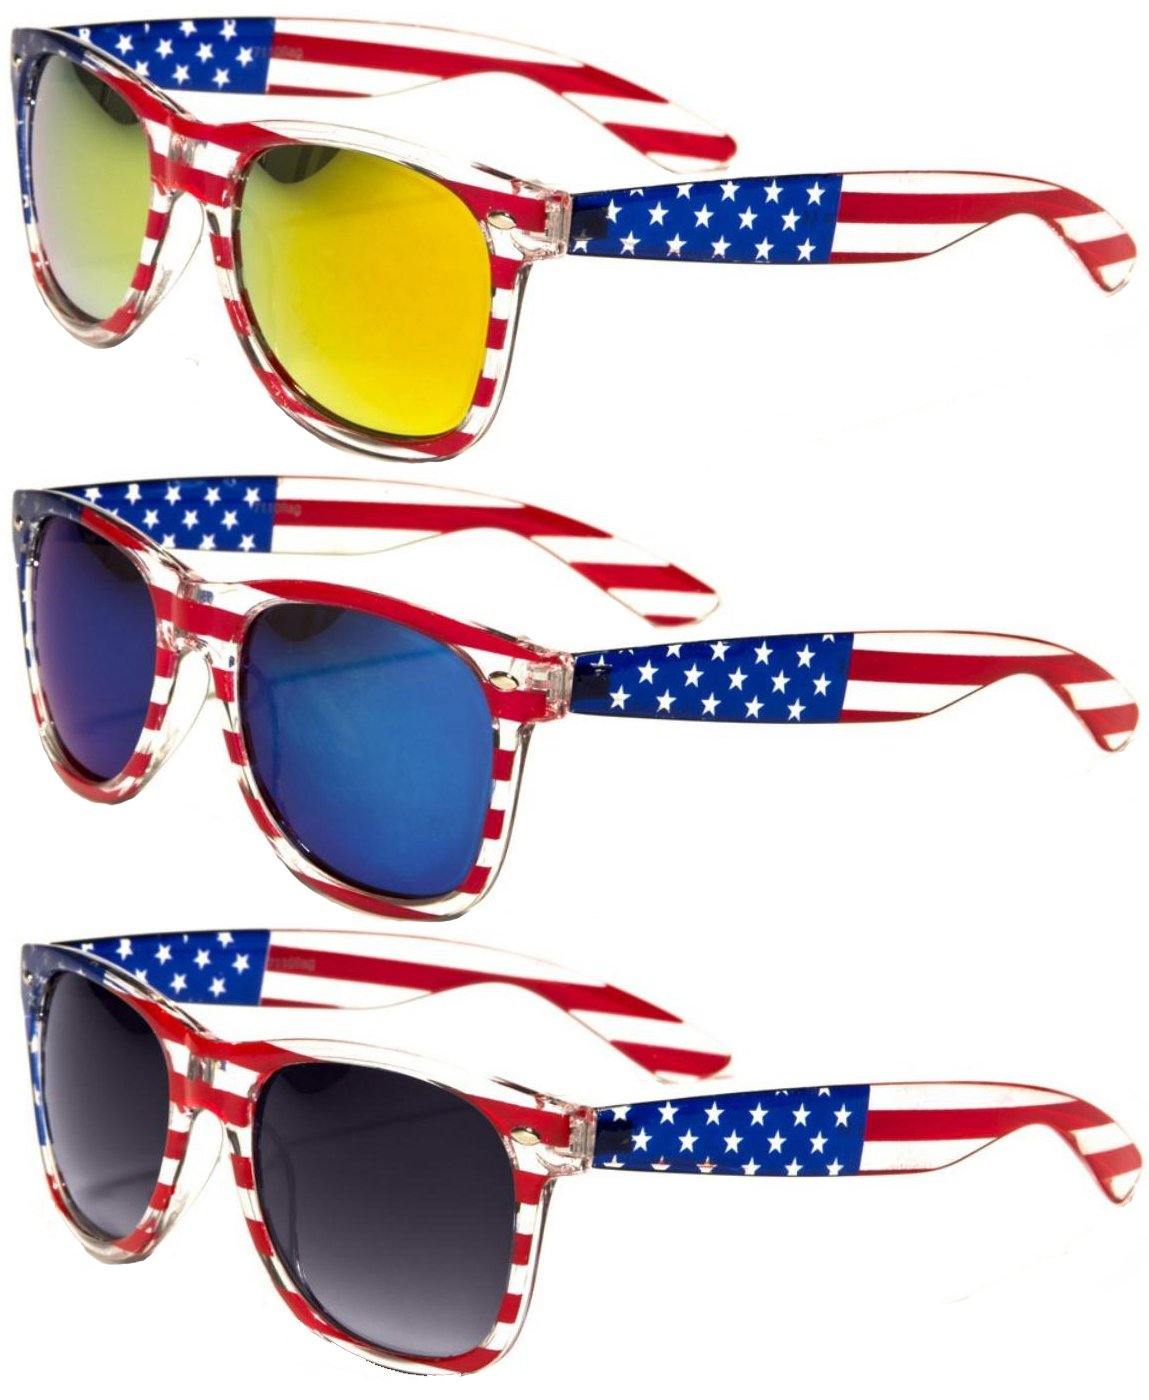 Classic American Patriot Flag Wayfarer Style Sunglasses USA (all 3 pairs) by Vision World Eyewear